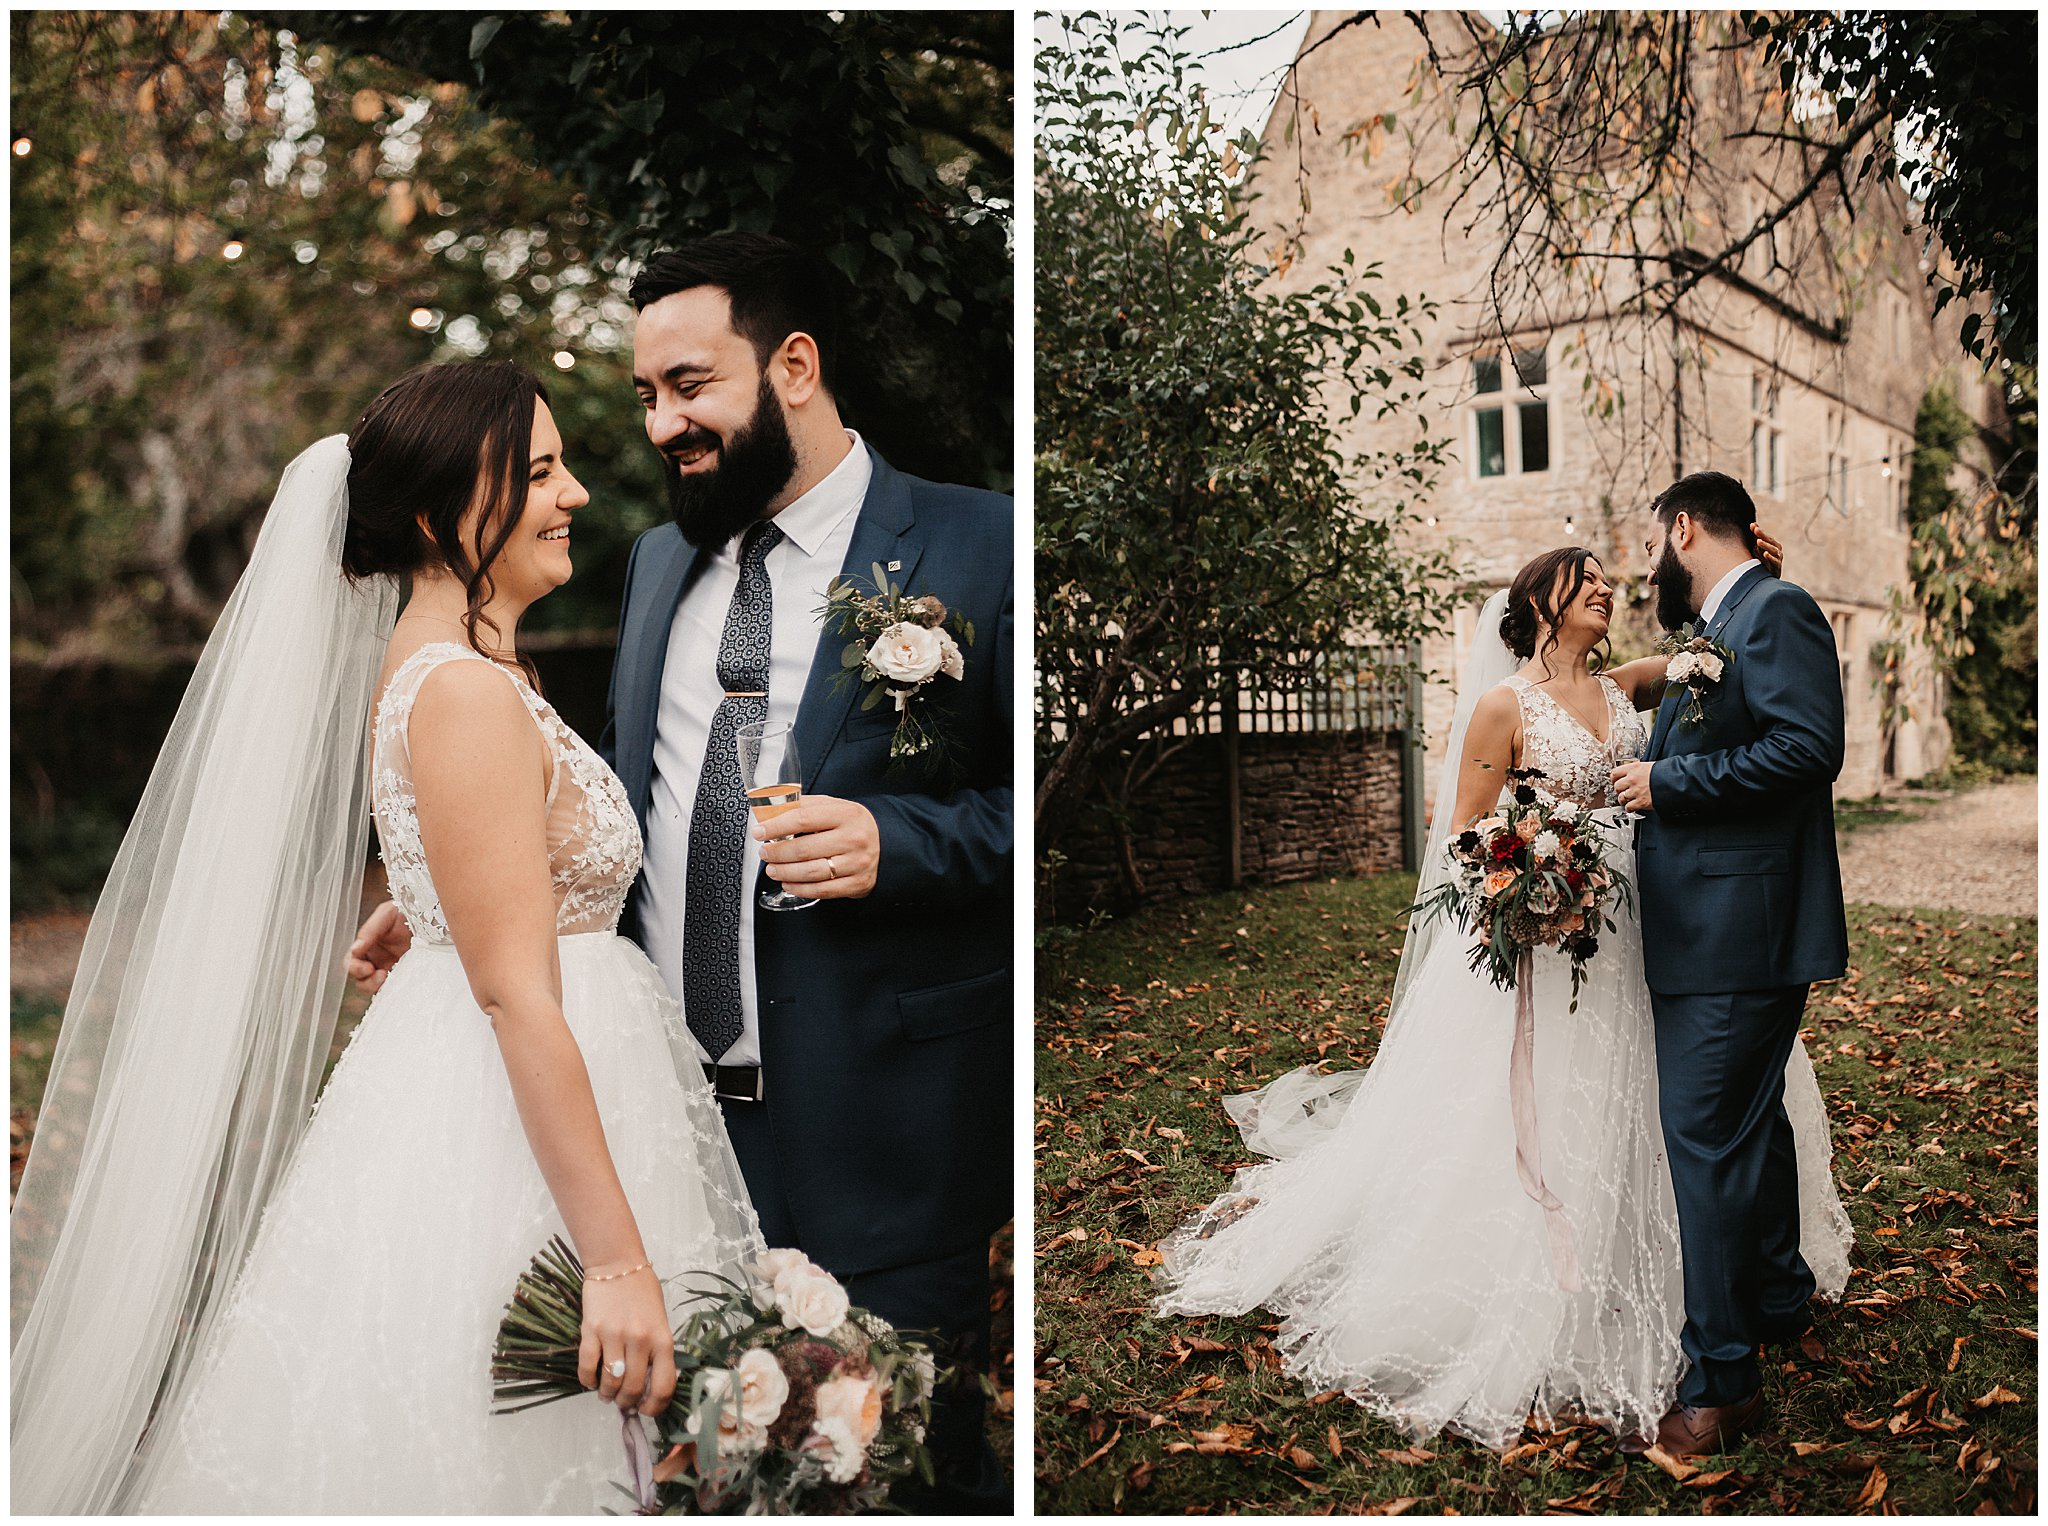 Max & Ksenia Autumnal Wiltshire Wedding-409.jpg